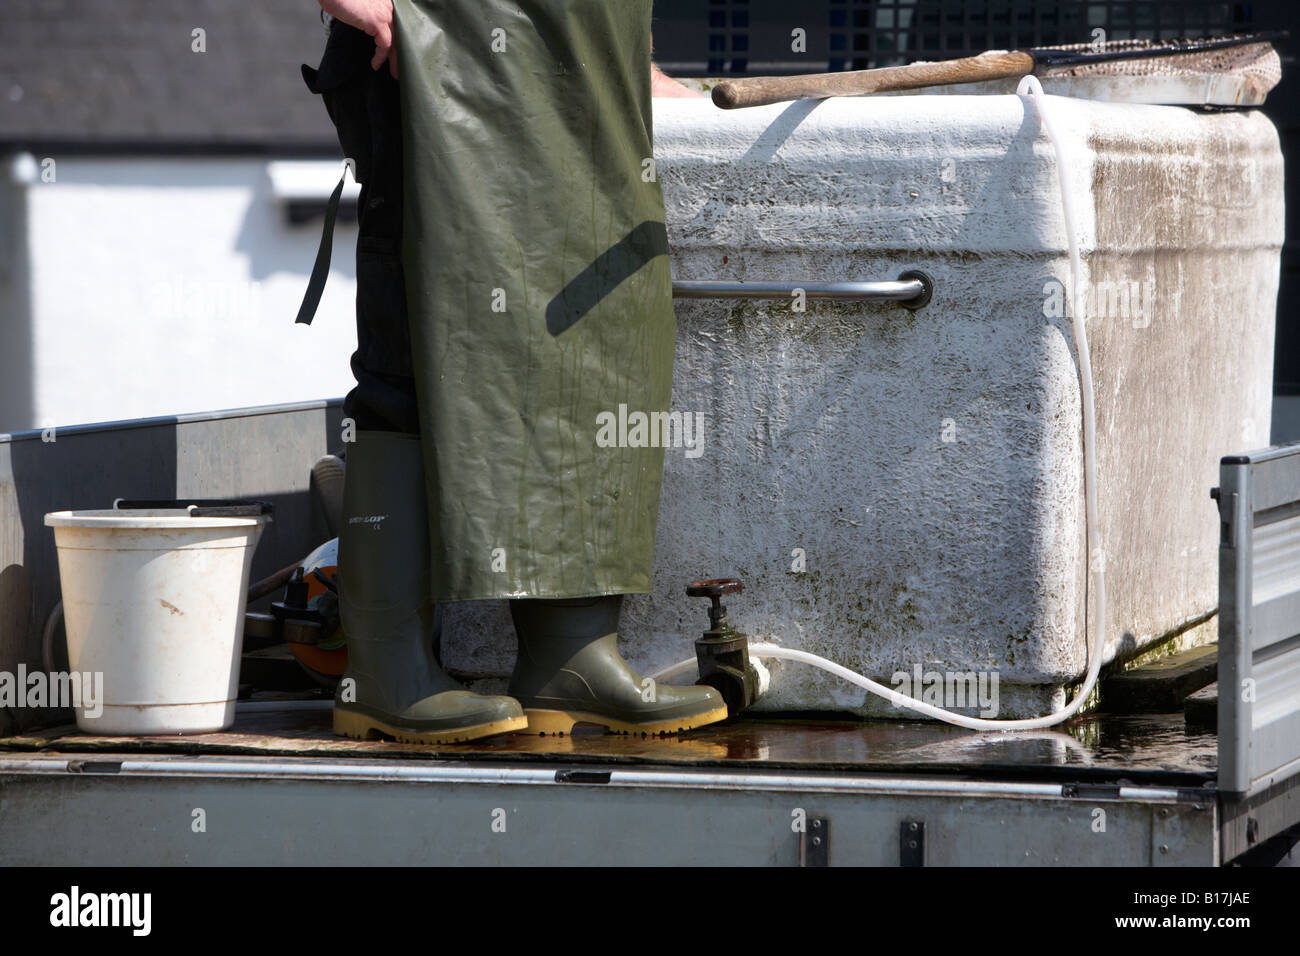 man wearing plastic apron standing beside tank mounted on the back of a van to restock a game fishery county down - Stock Image